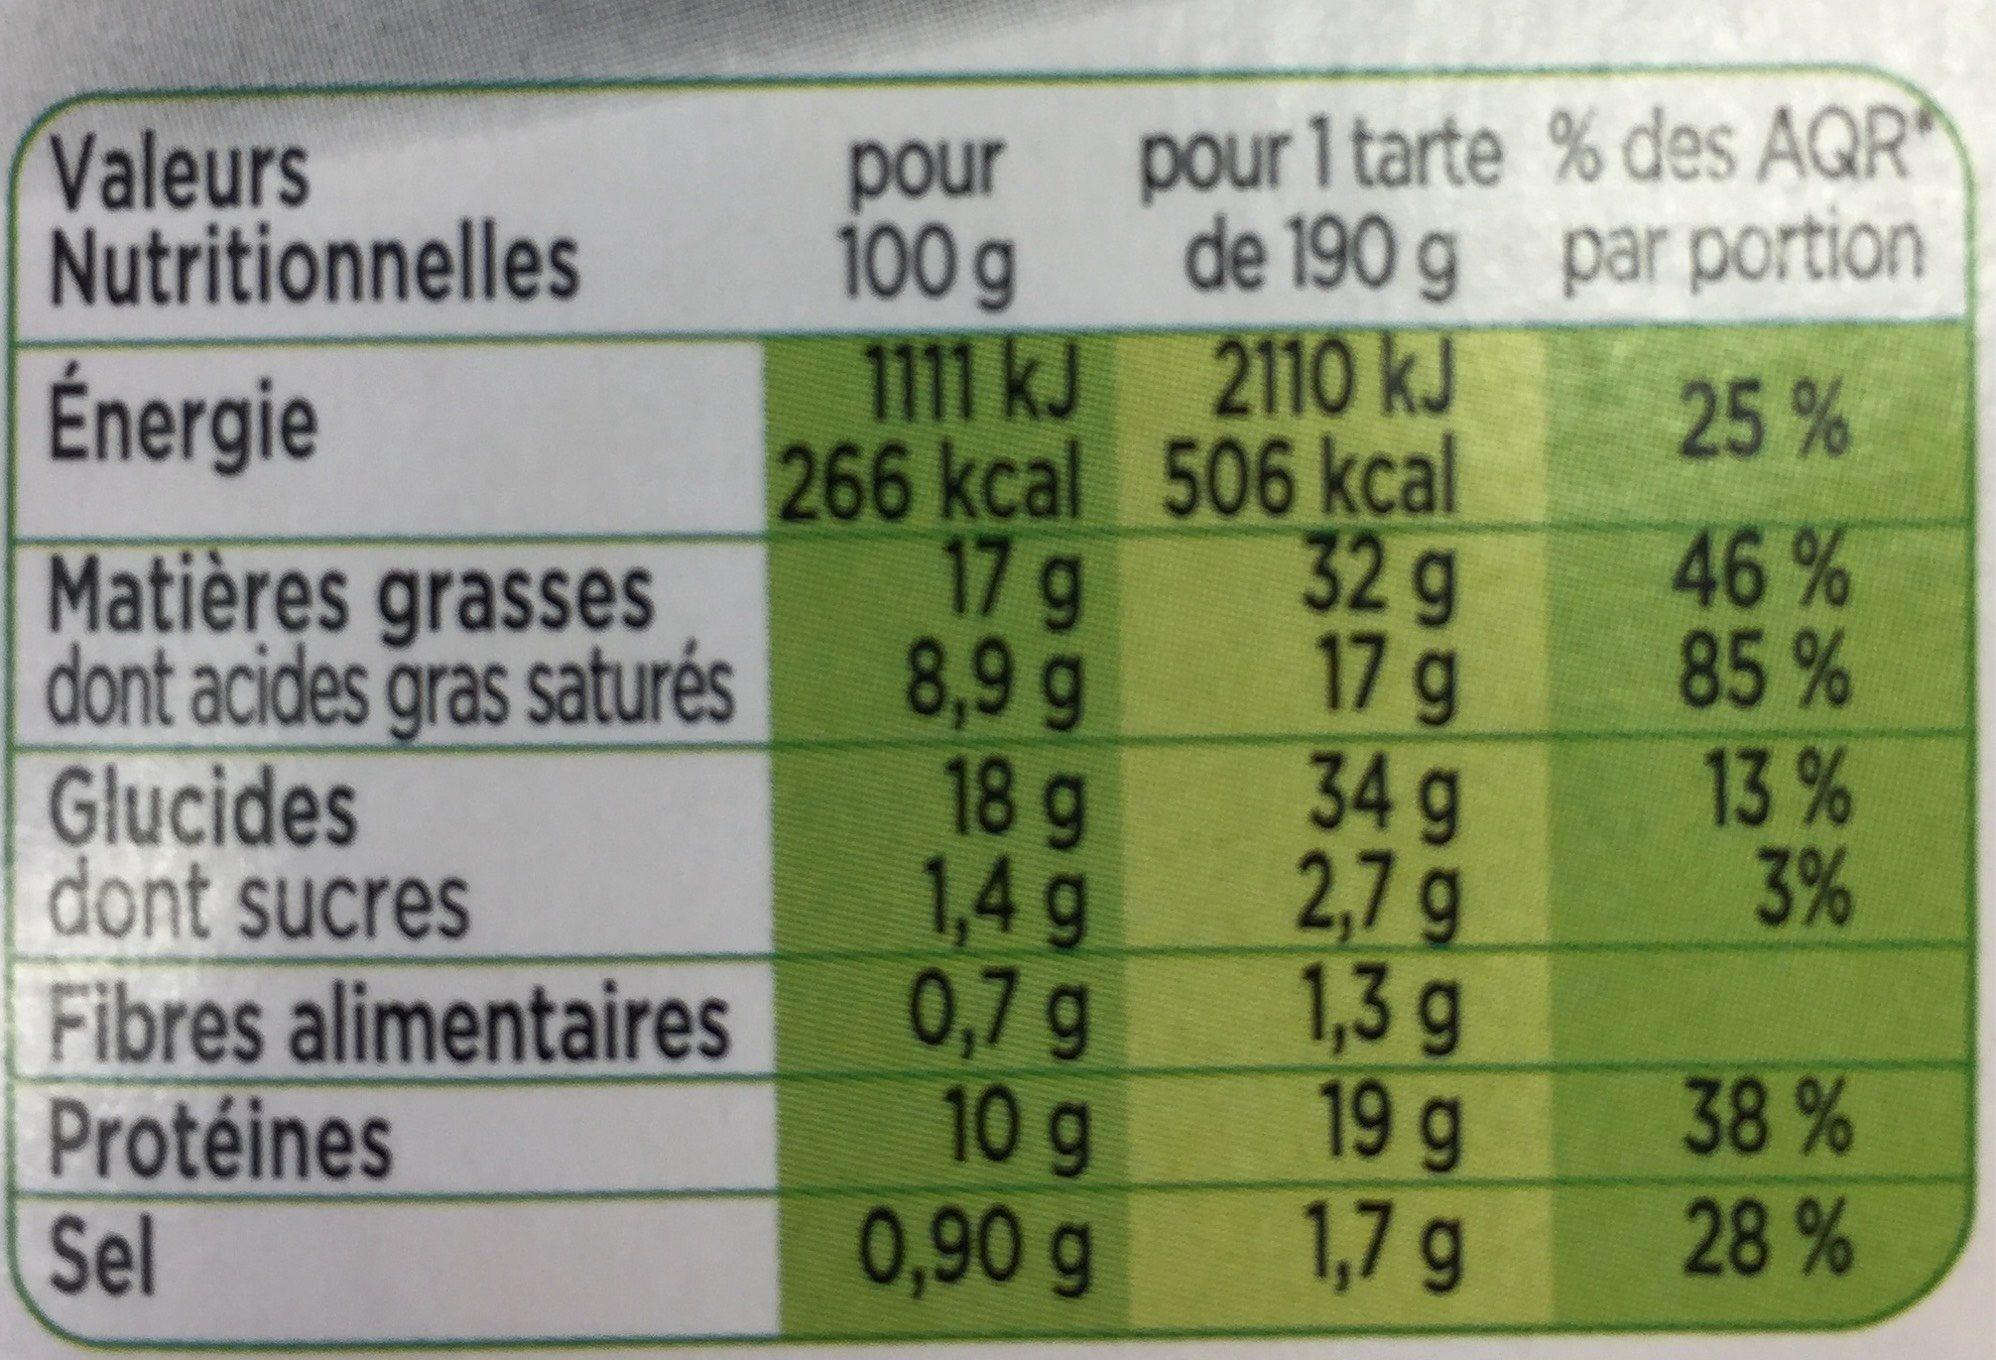 Tarte 3 Fromages 190g - Informations nutritionnelles